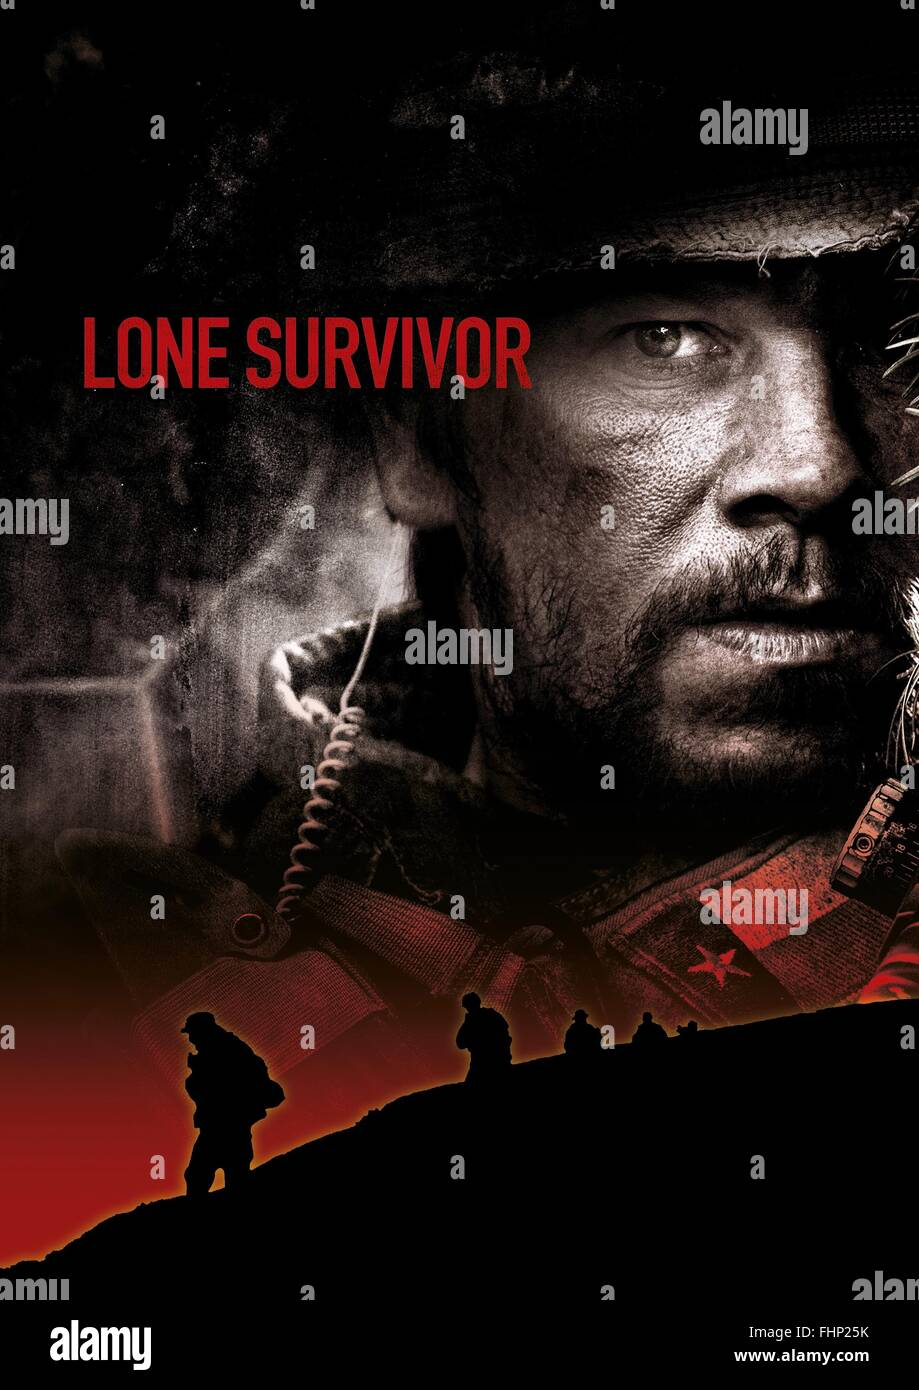 MARK WAHLBERG POSTER LONE SURVIVOR (2013 Stock Photo ...